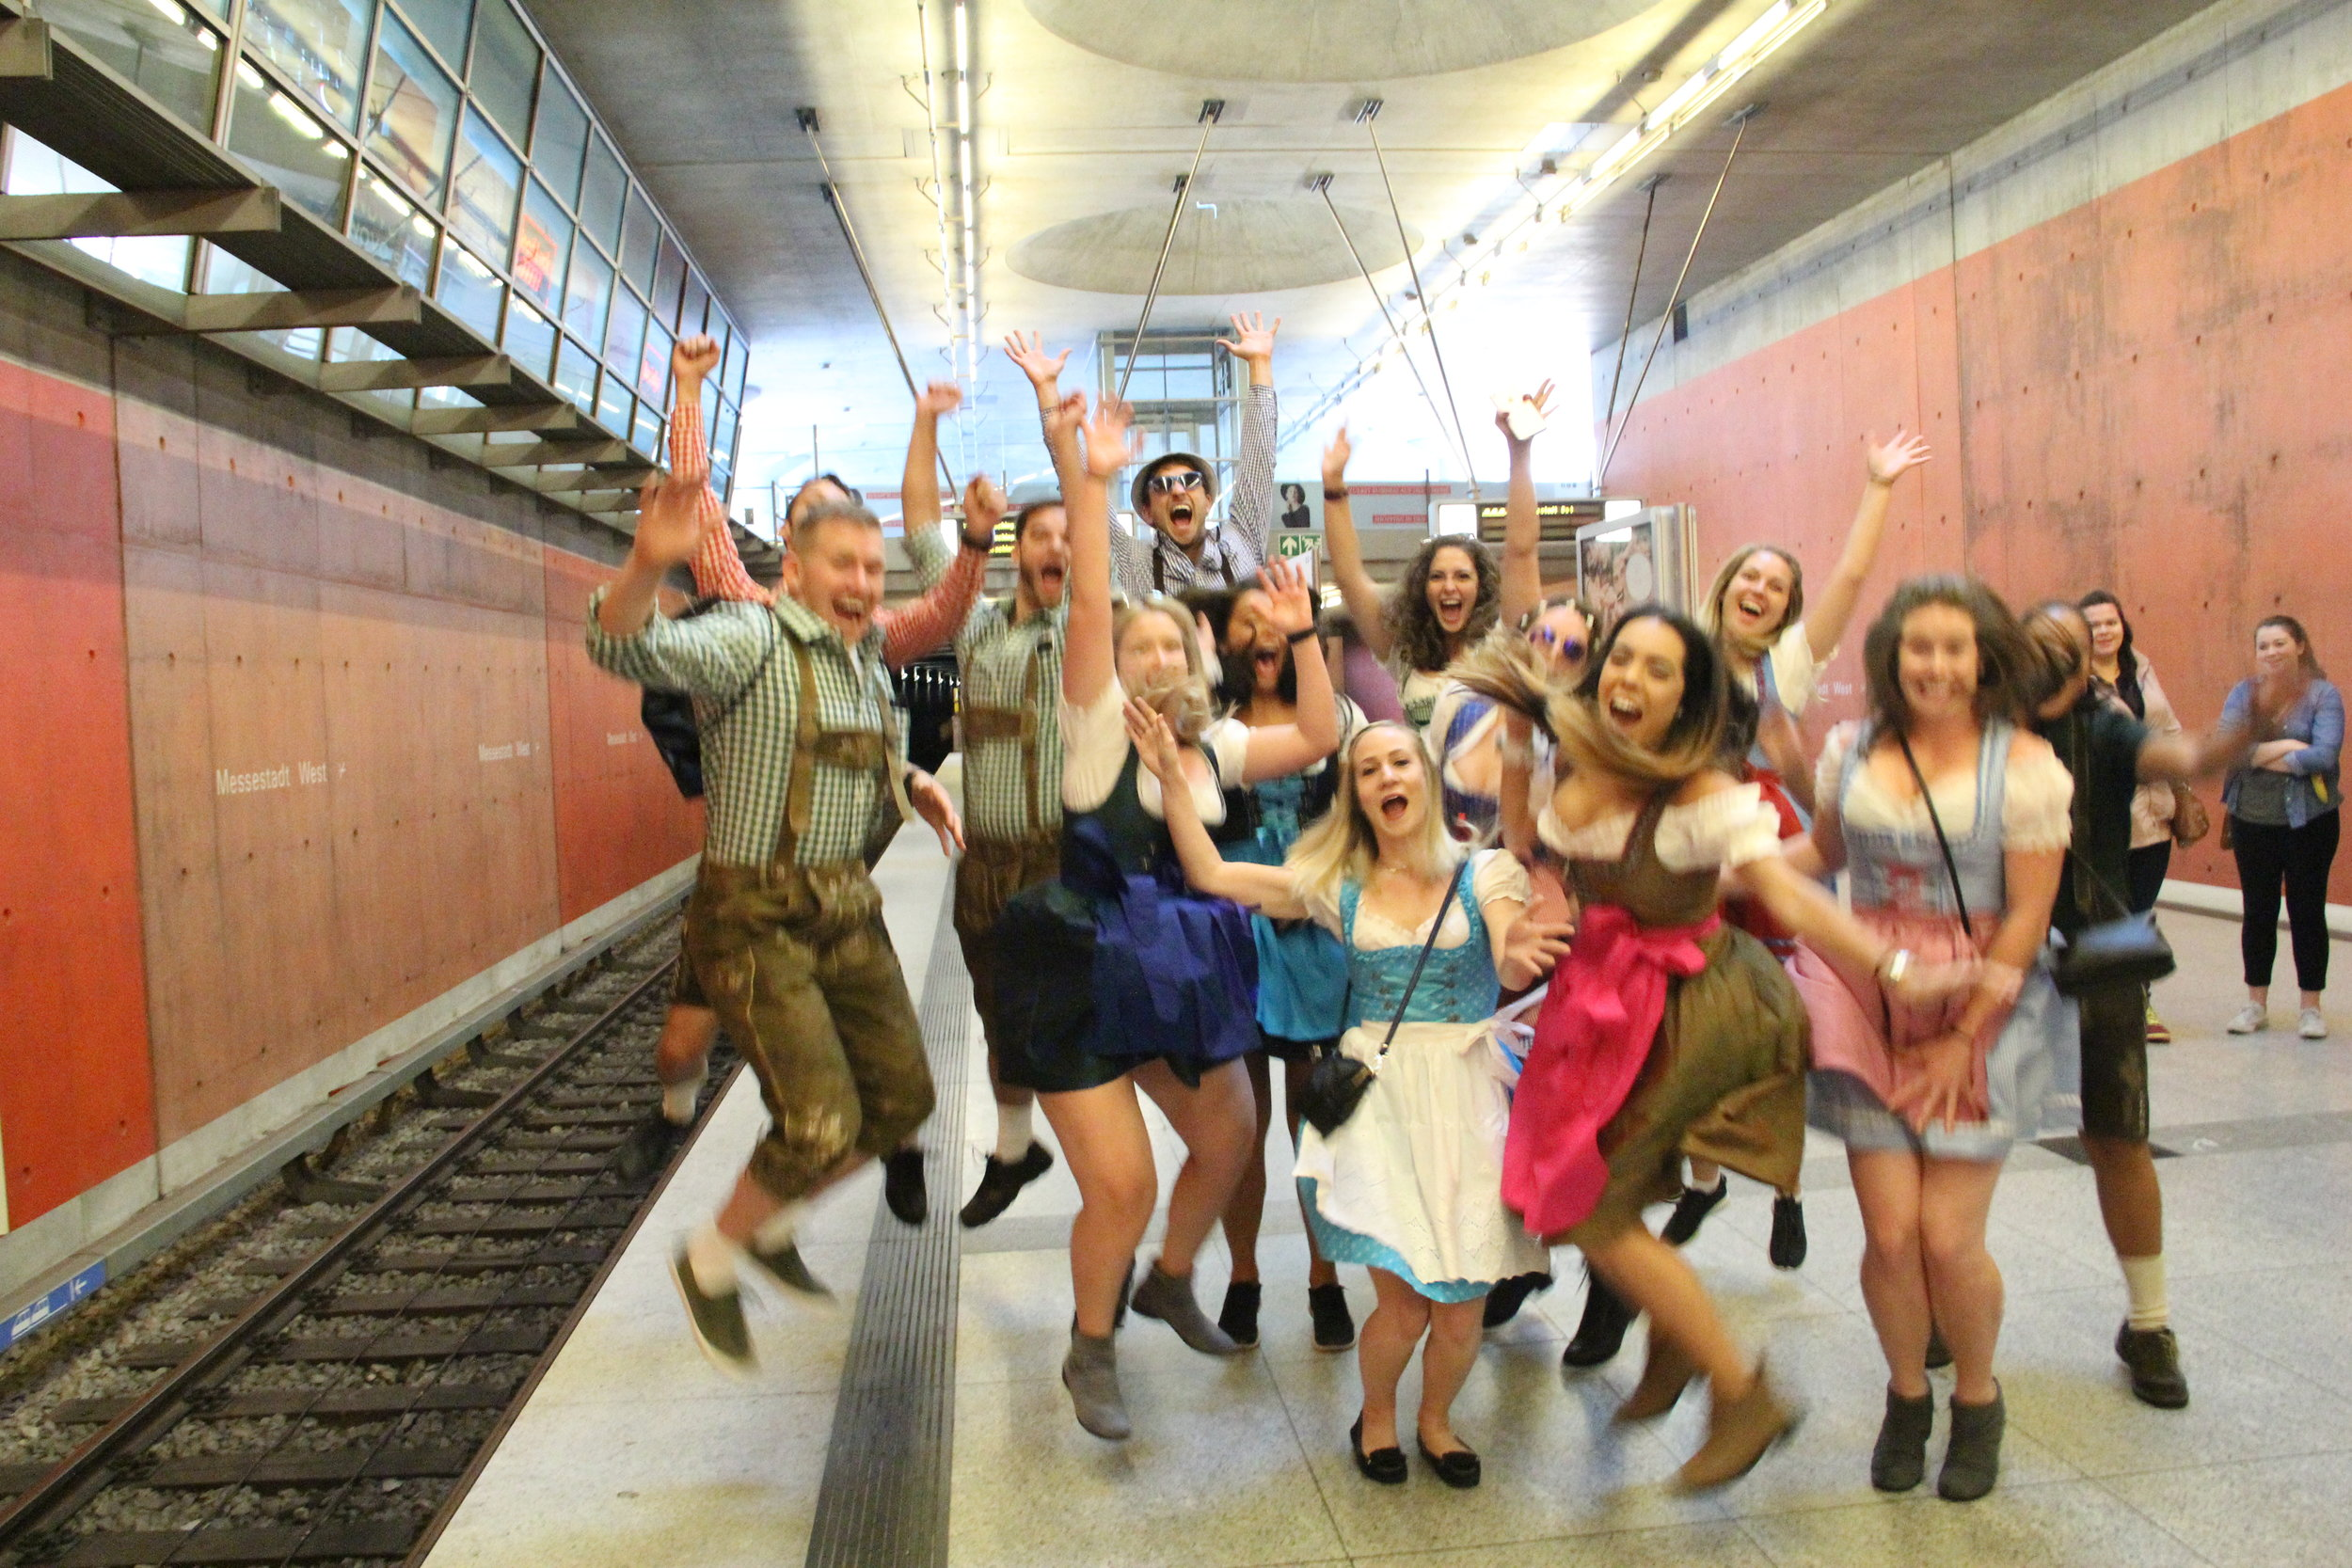 Who's ready for Oktoberfest? These guys. (Photo by Philip E.)